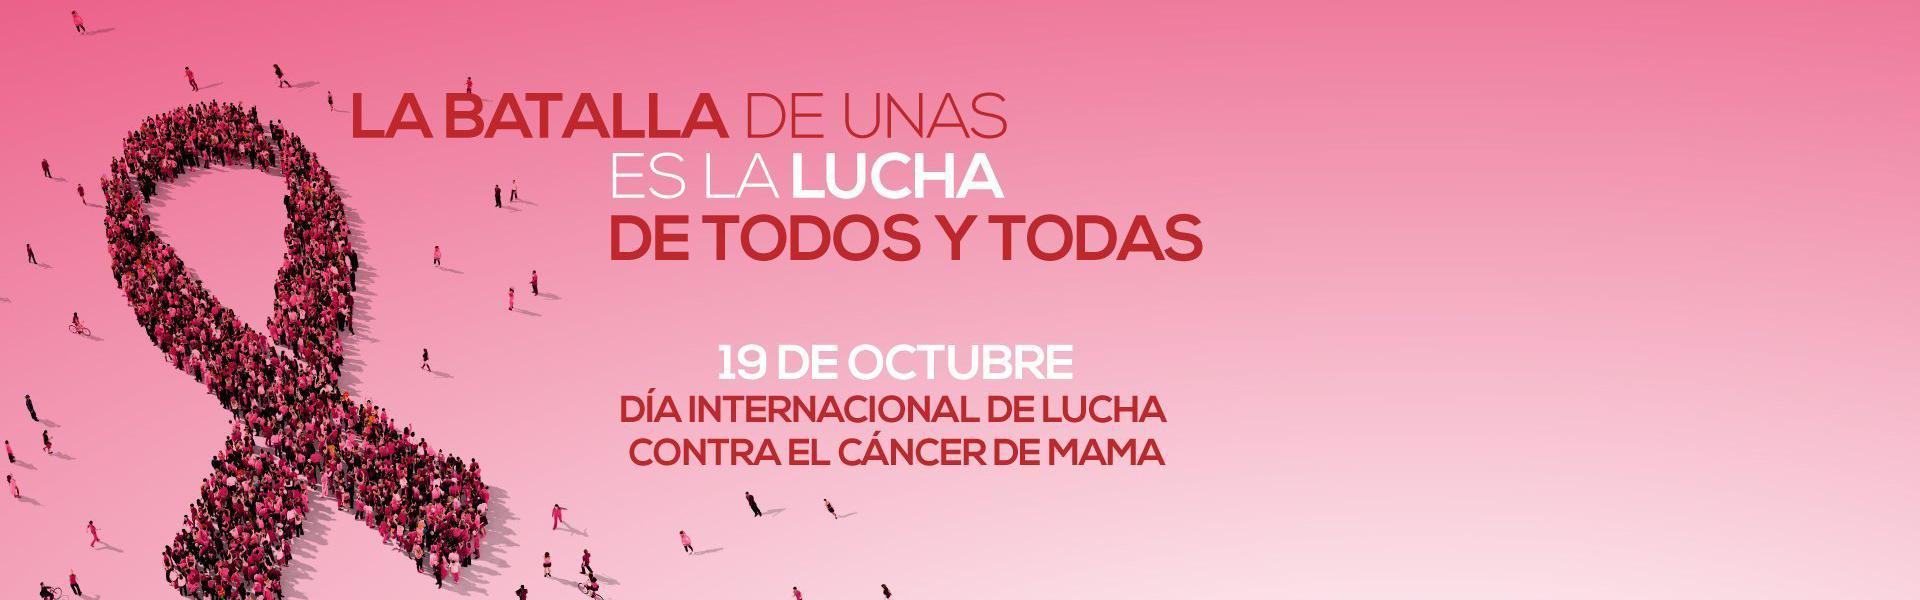 cancermama GHL Hoteles